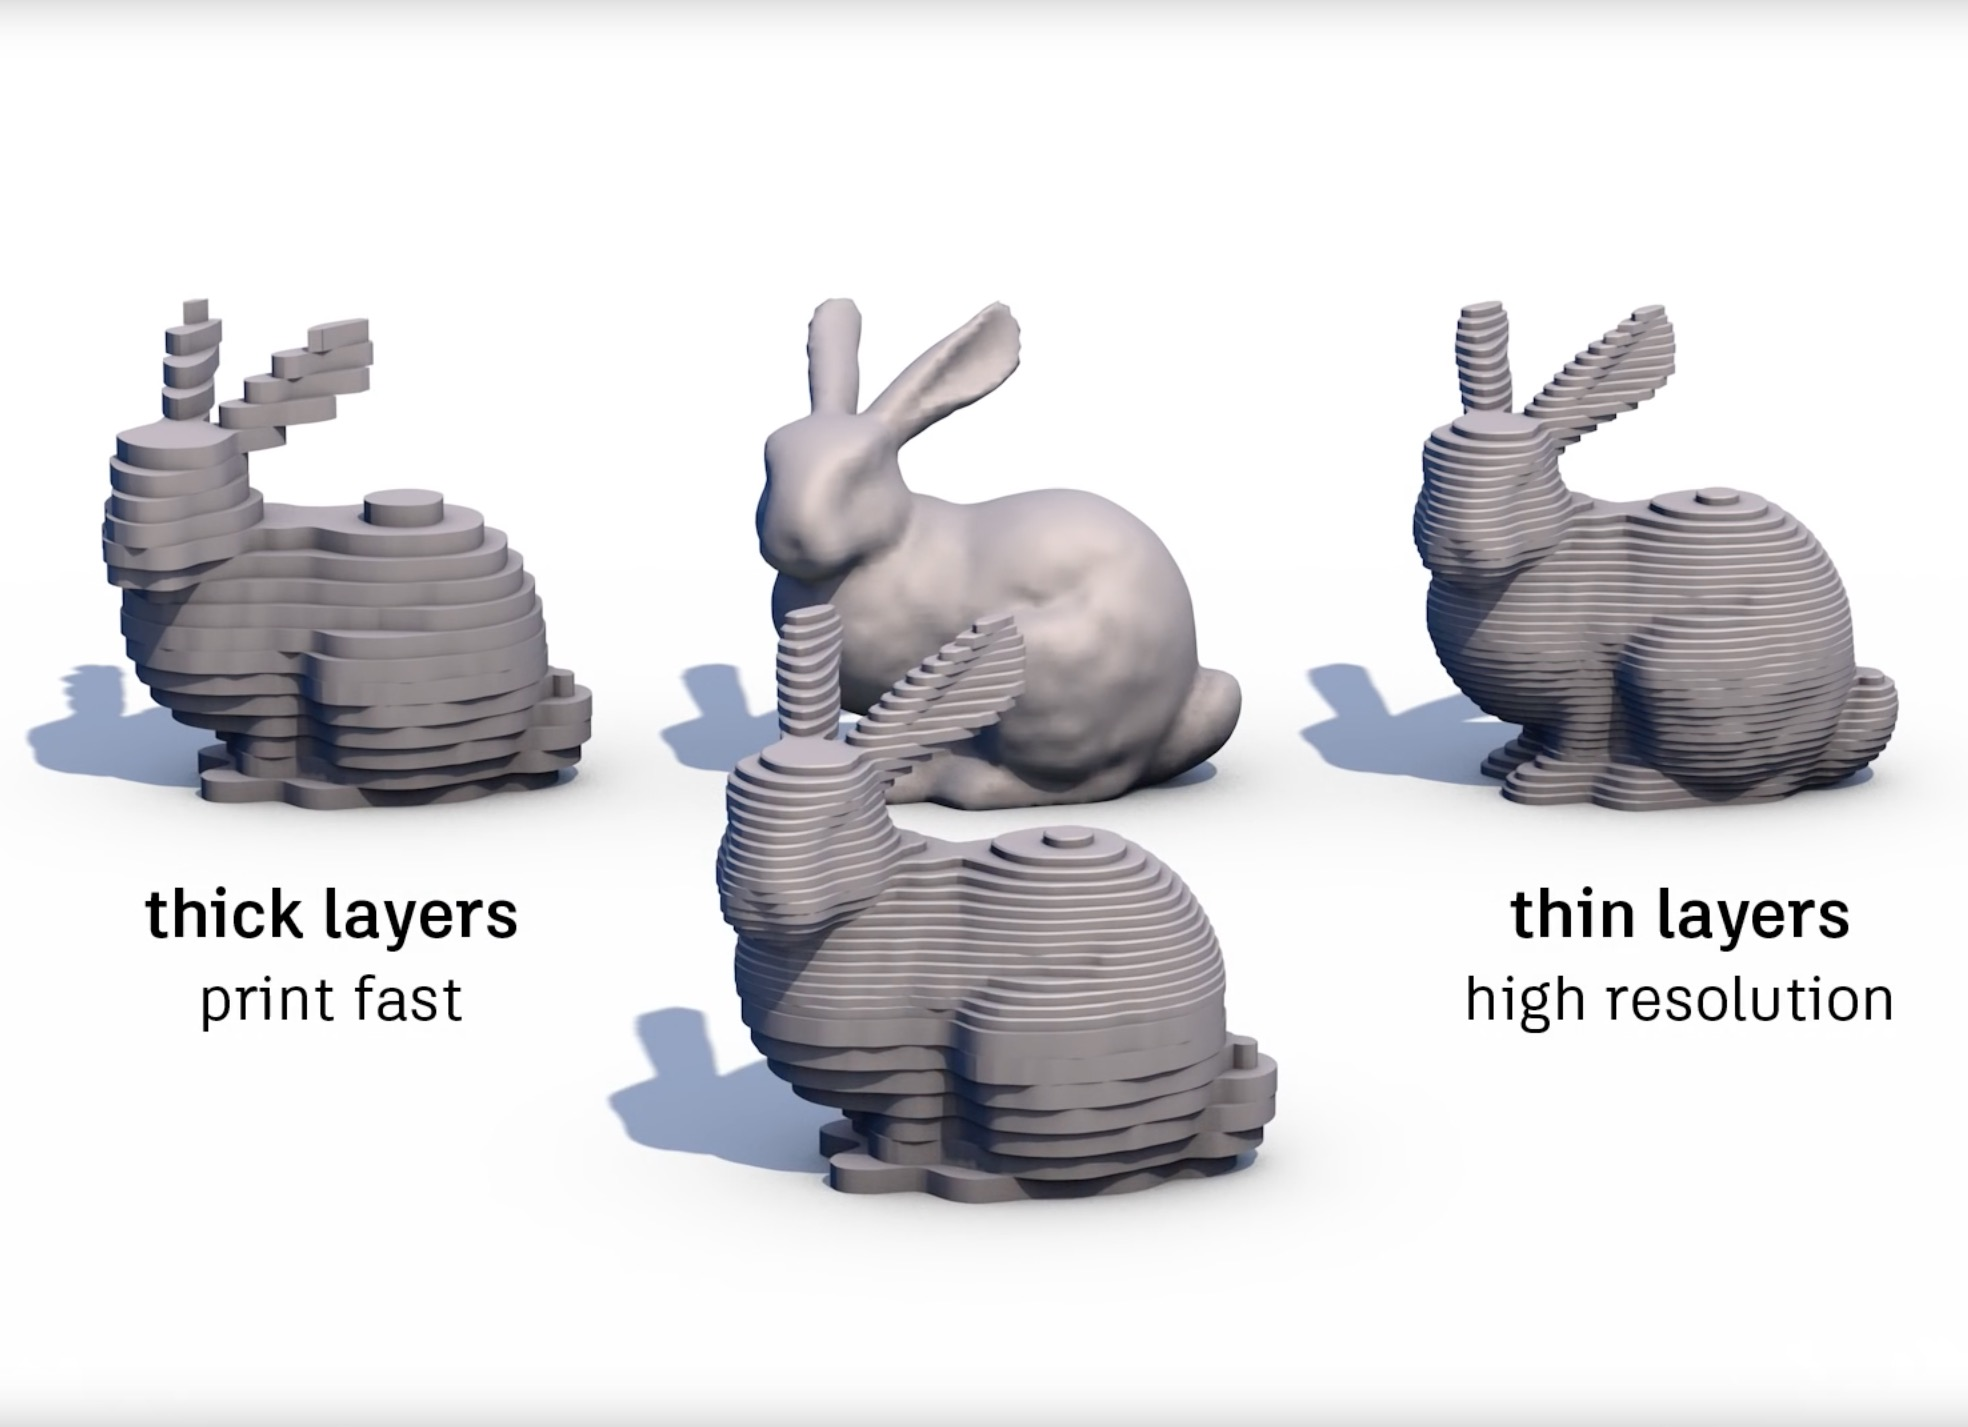 Variable Layer Slicing for The Ember 3D Printer: Good Idea or Not?